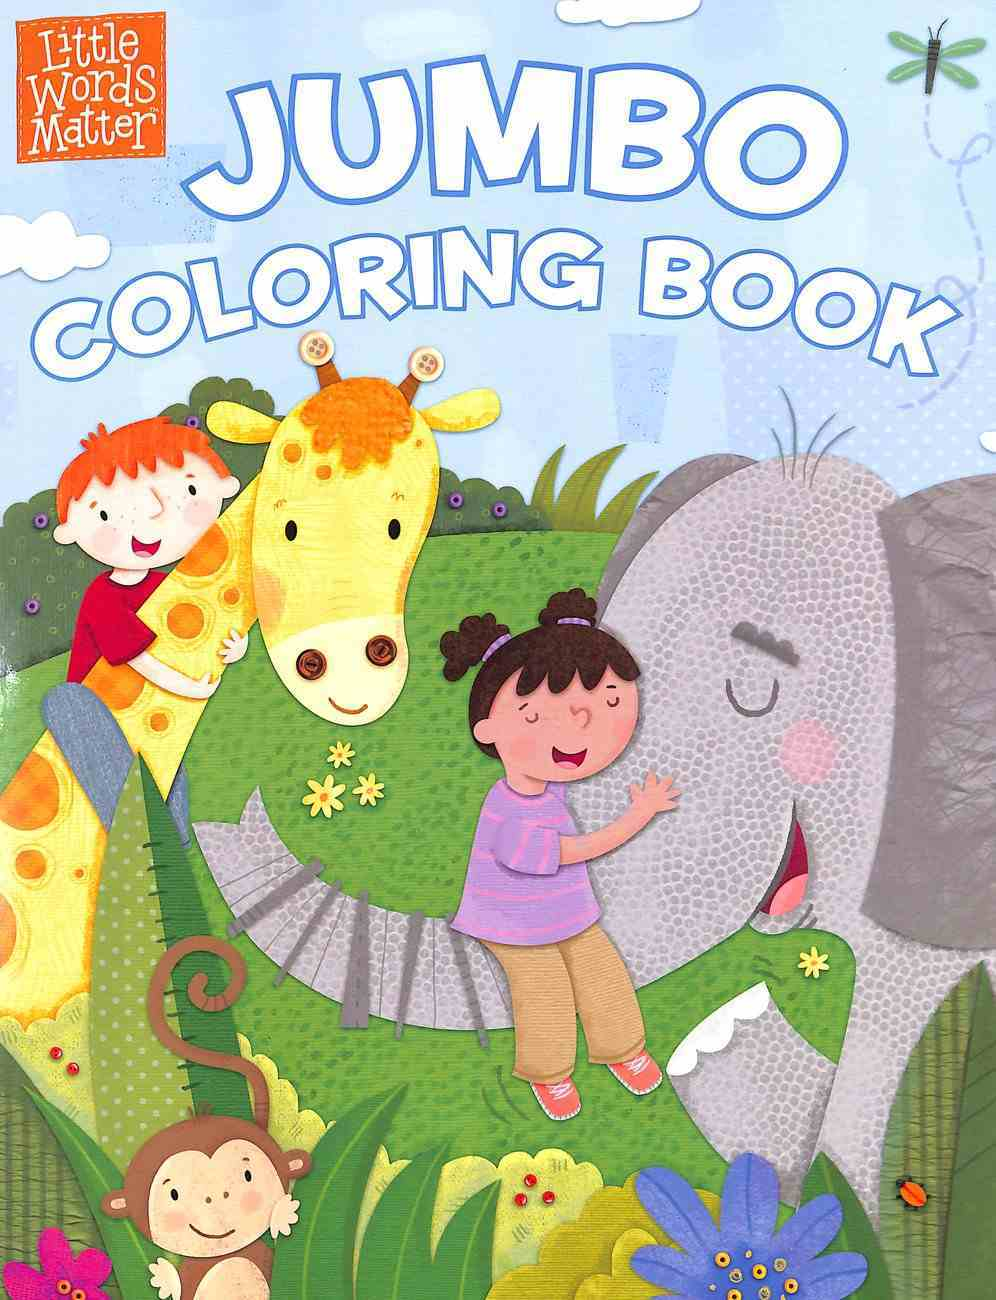 Little Words Matter Jumbo Coloring Book (Ages 1-4) Paperback